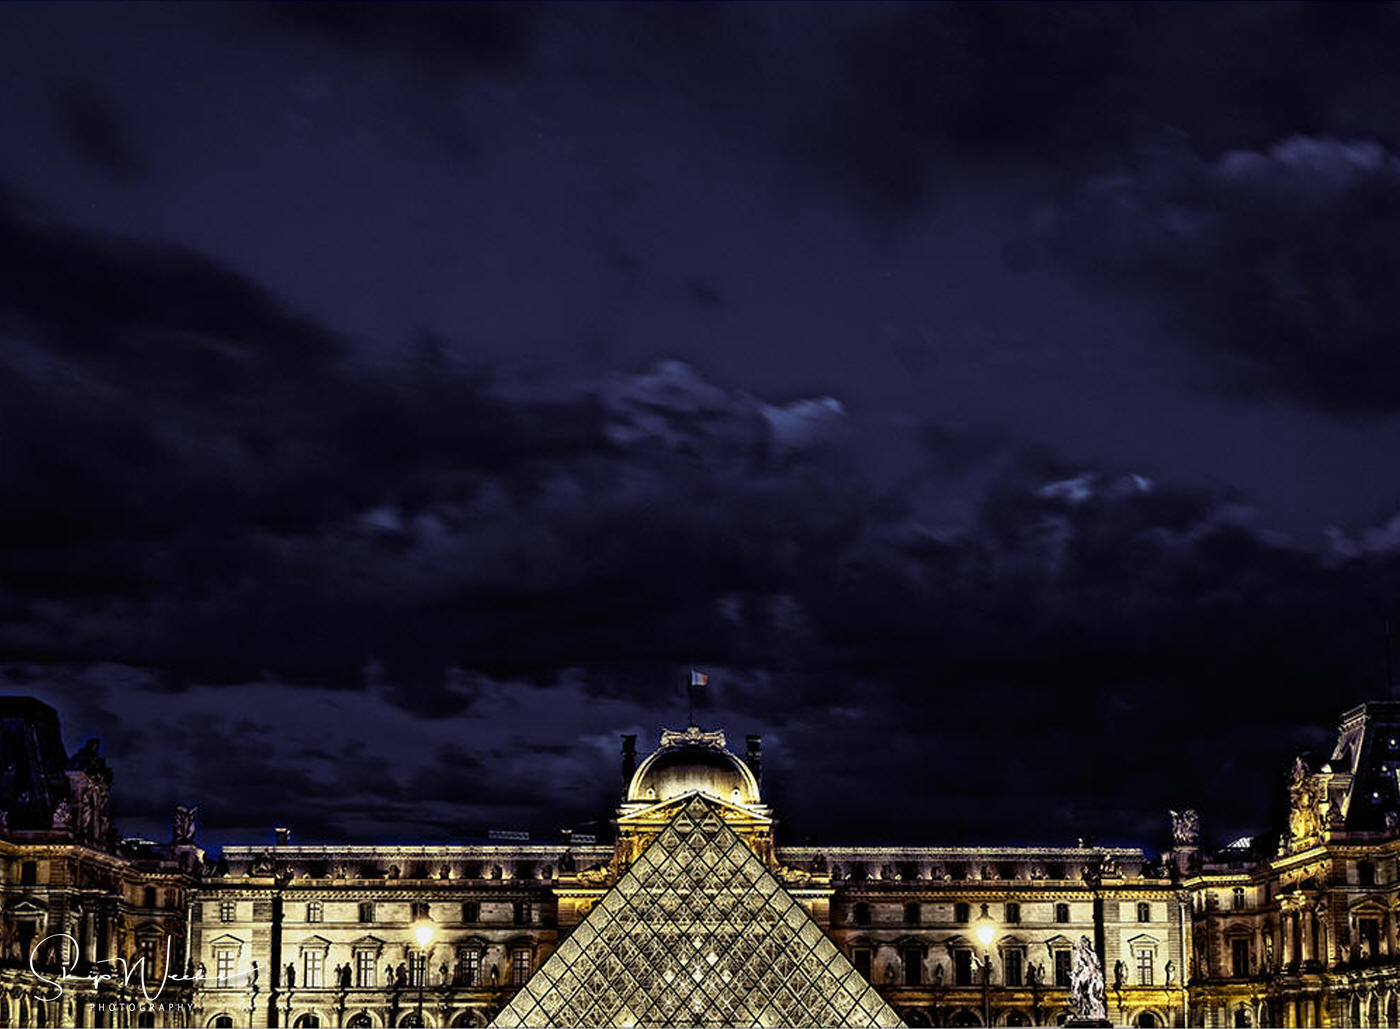 The Louvre at Night by Skip Weeks